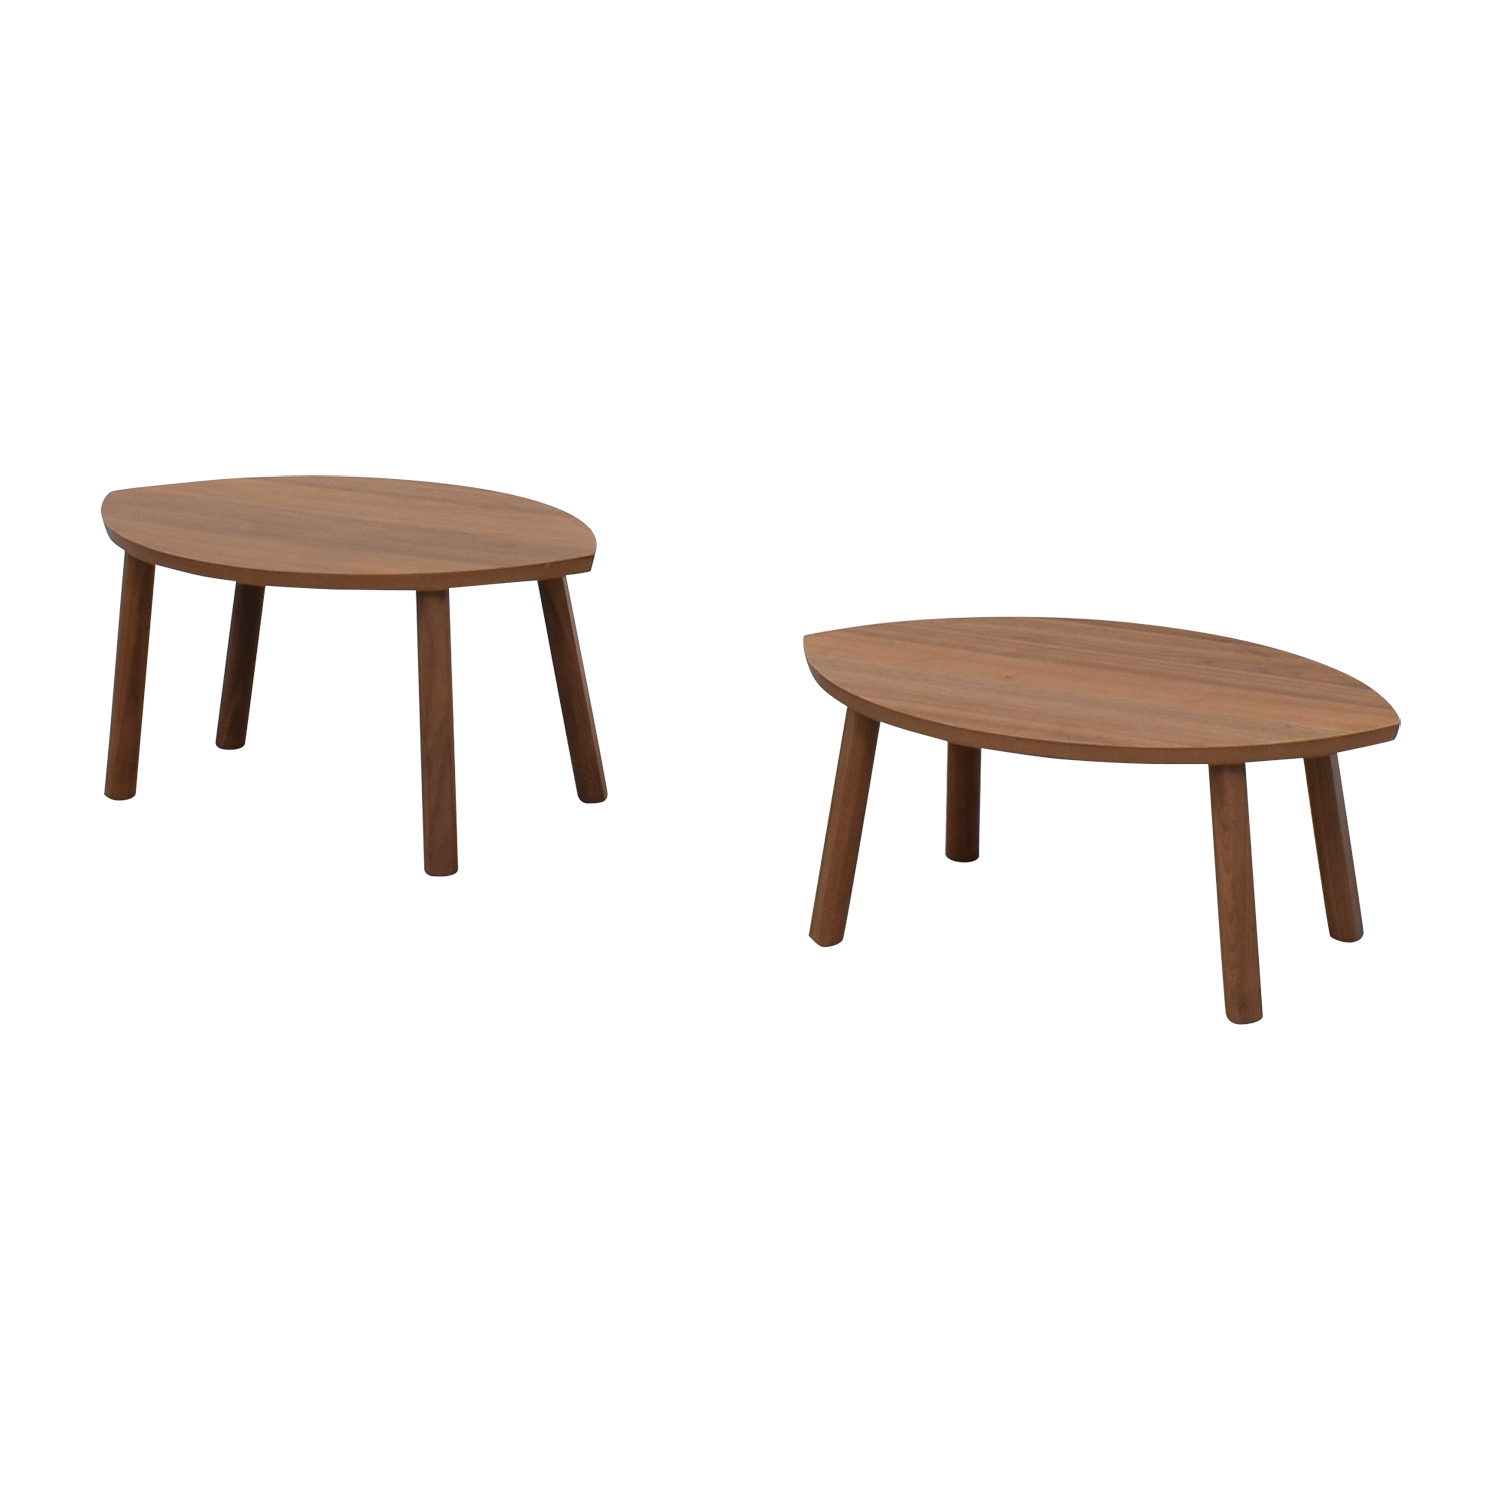 Oval Coffee Table Nest: IKEA IKEA Stockholm Oval Nesting Wood End Tables